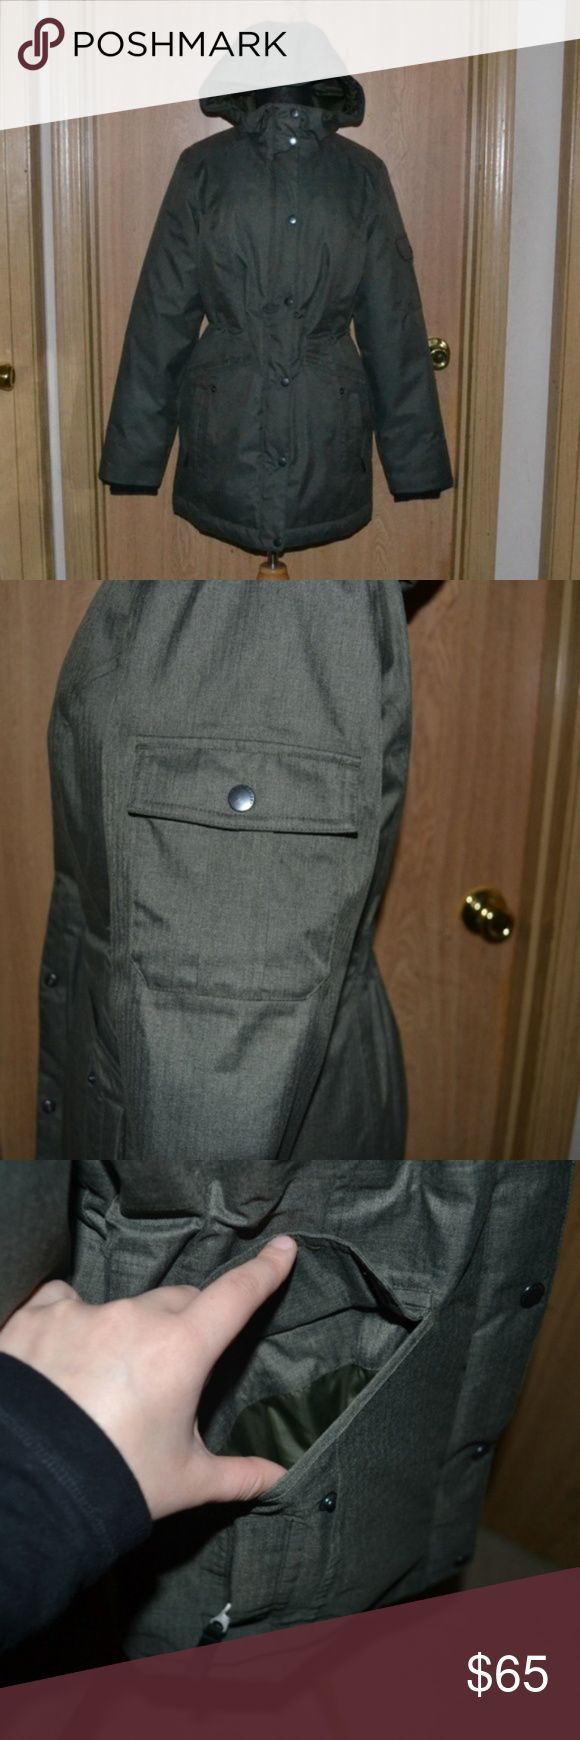 NWOT Eddie Bauer olive green winter jacket I ship Monday - Friday! sometimes Saturday <3 No holds or trades! Offers are welcomed please submit them through the offer button~ thank you   A gorgeous Dark olive green jacket with multiple compartments/pockets ( about 6- 1 is hidden inside) In like new condition. Never been used. thick, puffy, comfy & perfect for winter! jacket is a bit heavy! Size small 100% polyester. Measurements are approximate: Length 31 1/2 in shoulder 15 1/2 in armpit to…